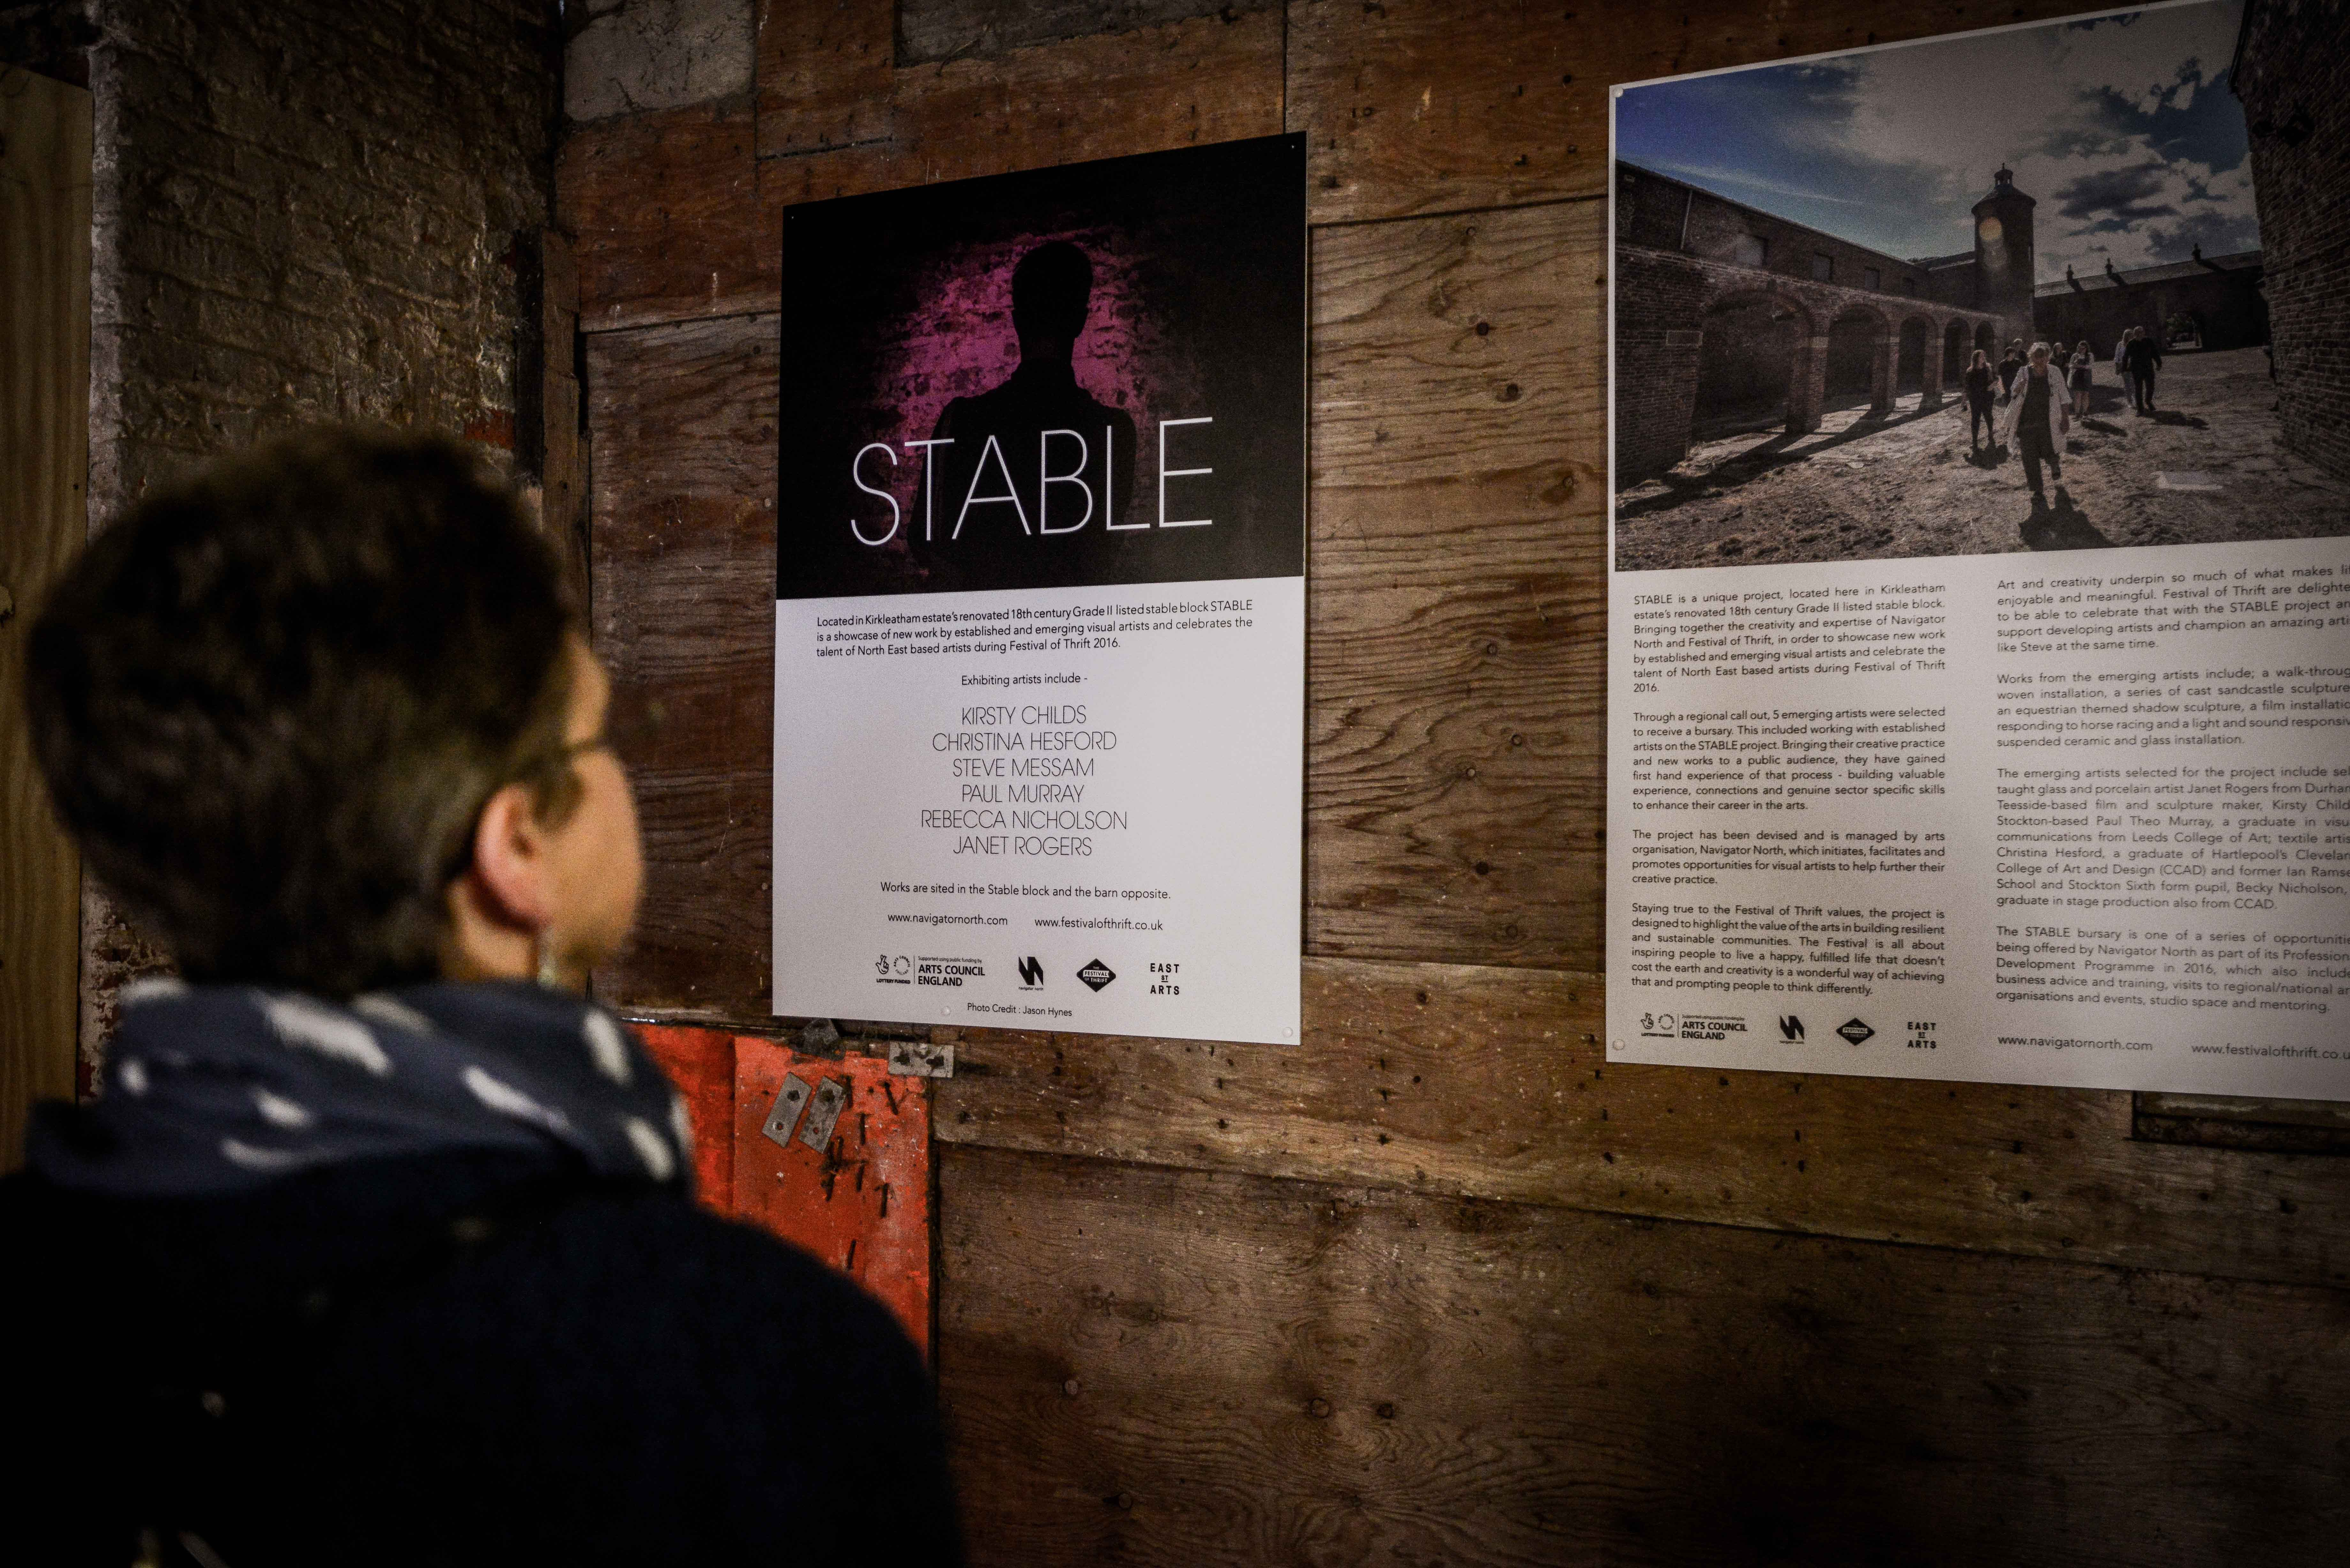 stable-9-photo-credit-to-jason-hynes